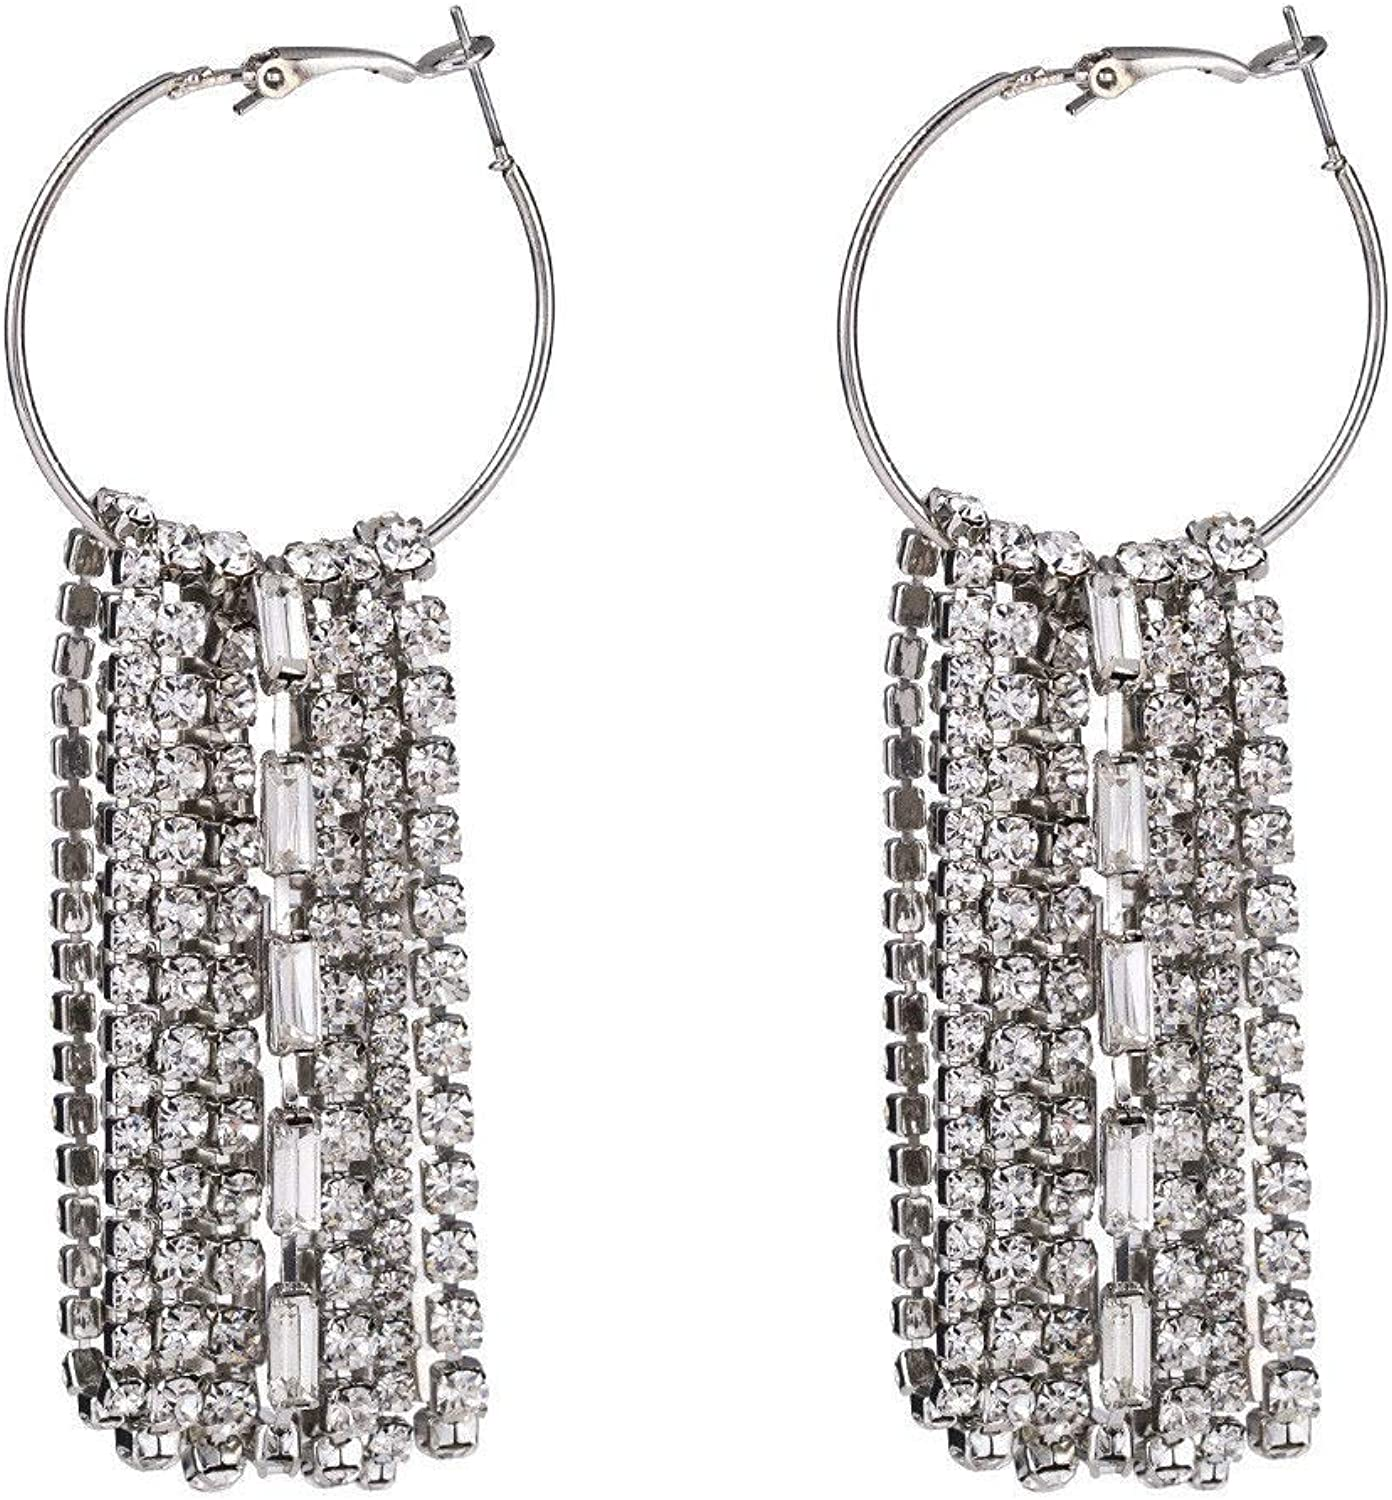 Dana Carrie Europe, the United States exaggerated Ear Clip exaggerated alloy chain ear fall into the metal texture earrings ears